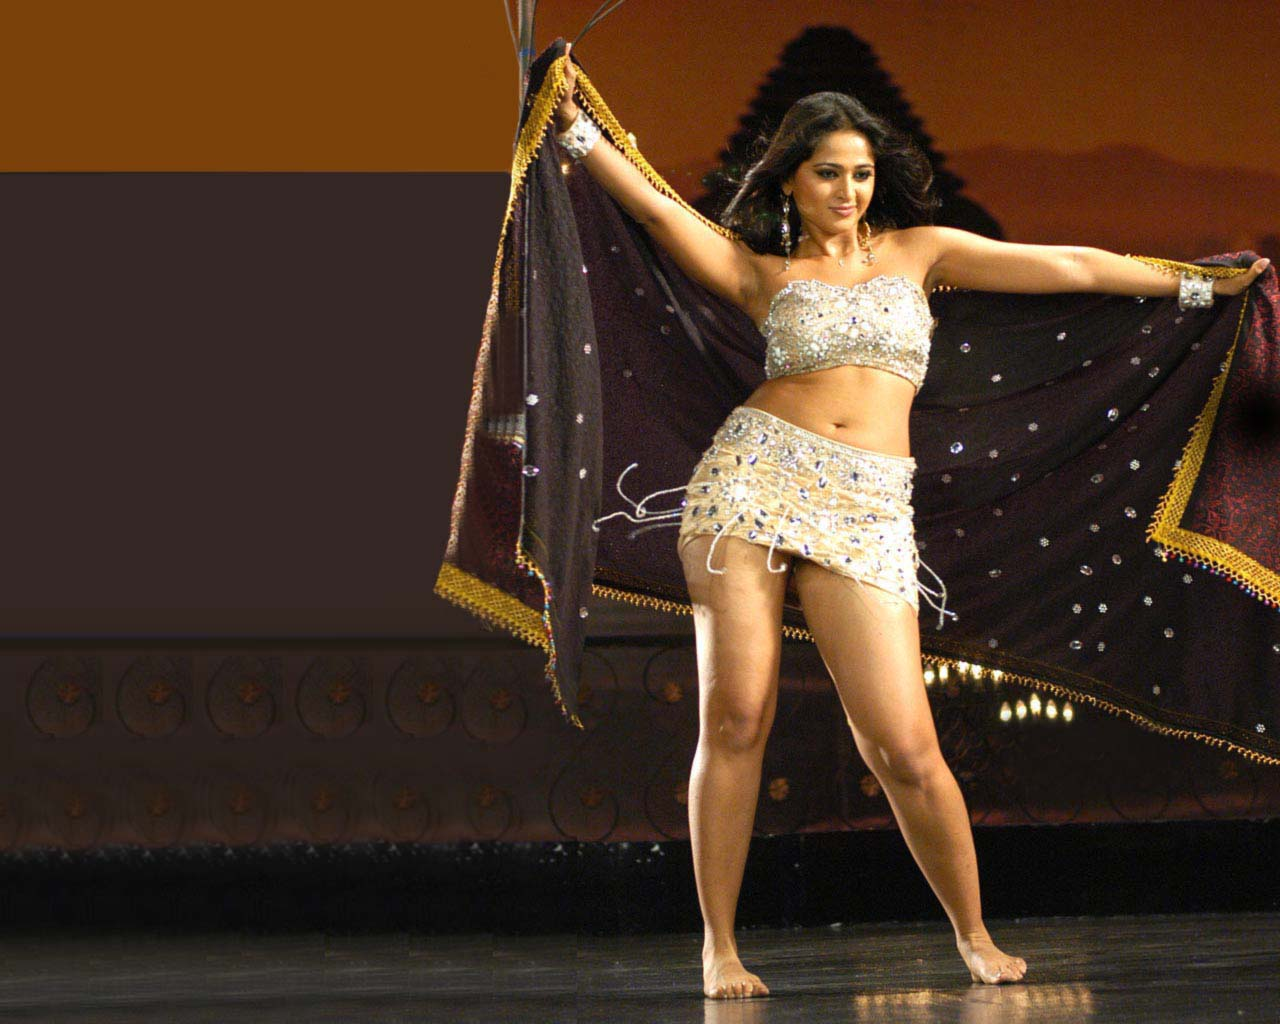 Best Girl Wallpapers Ever Beautiful Hd Wallpapers Of Anushka Shetty Facts N